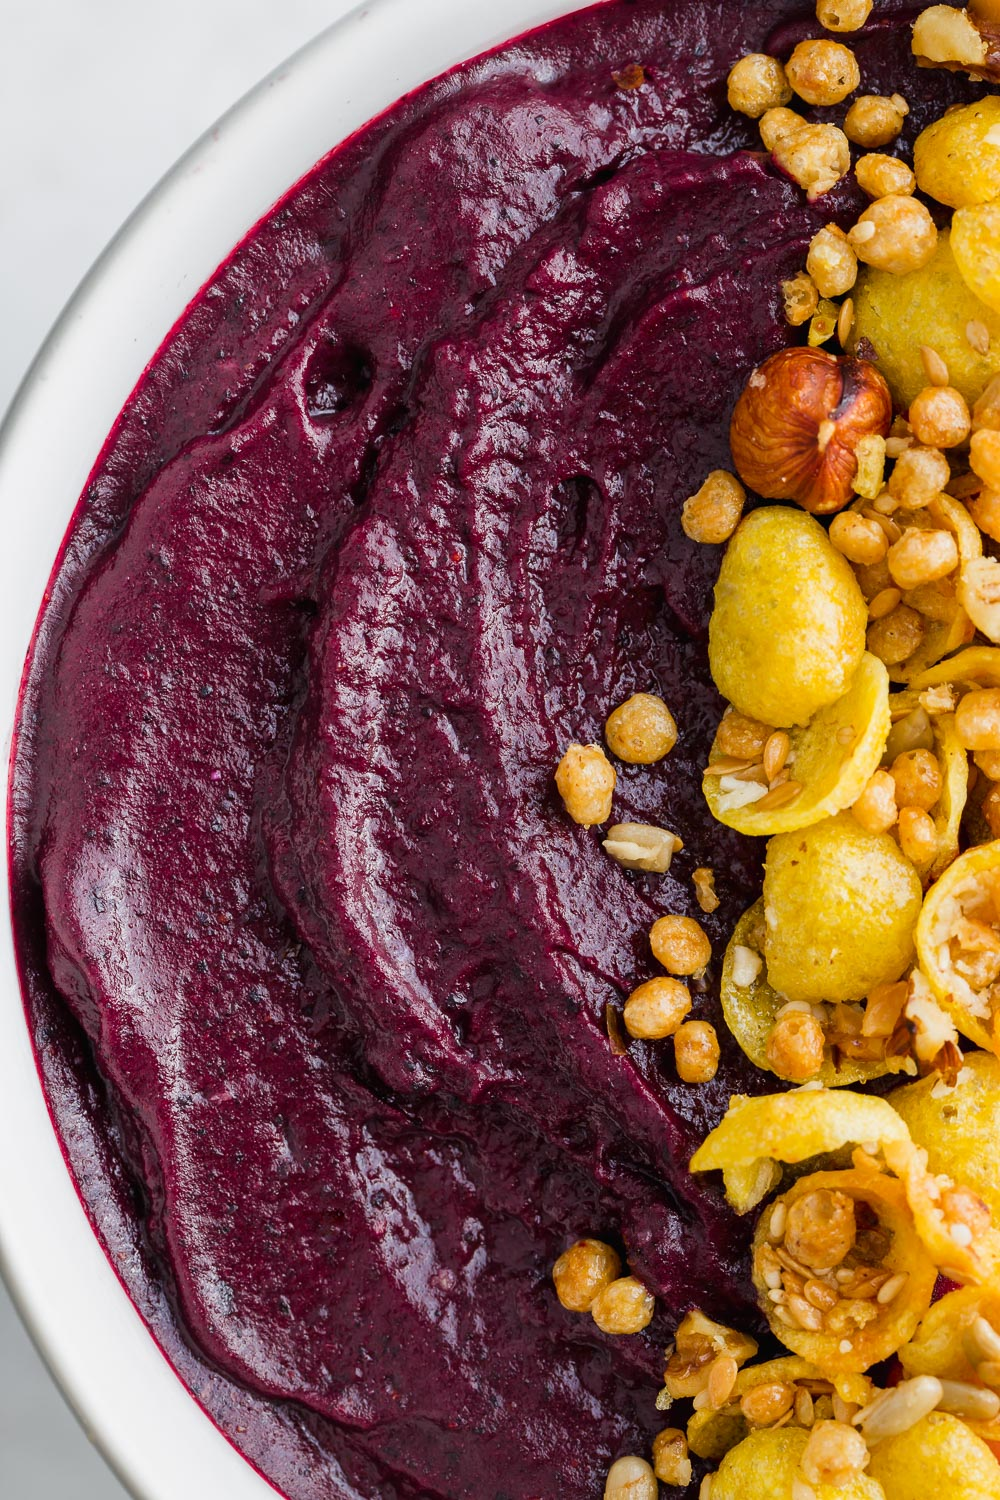 acai smoothie bowl up close